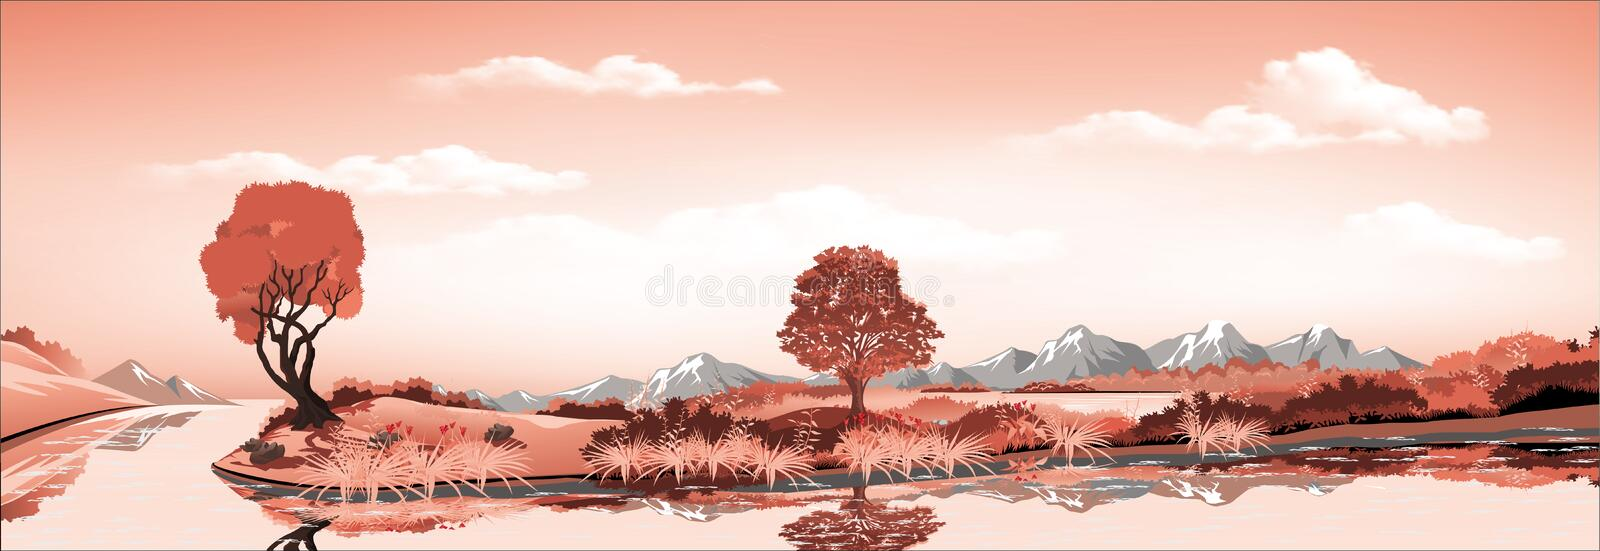 Panorama of nature-the island in the lake, volcano, mountains, rivers and hills with trees. royalty free illustration